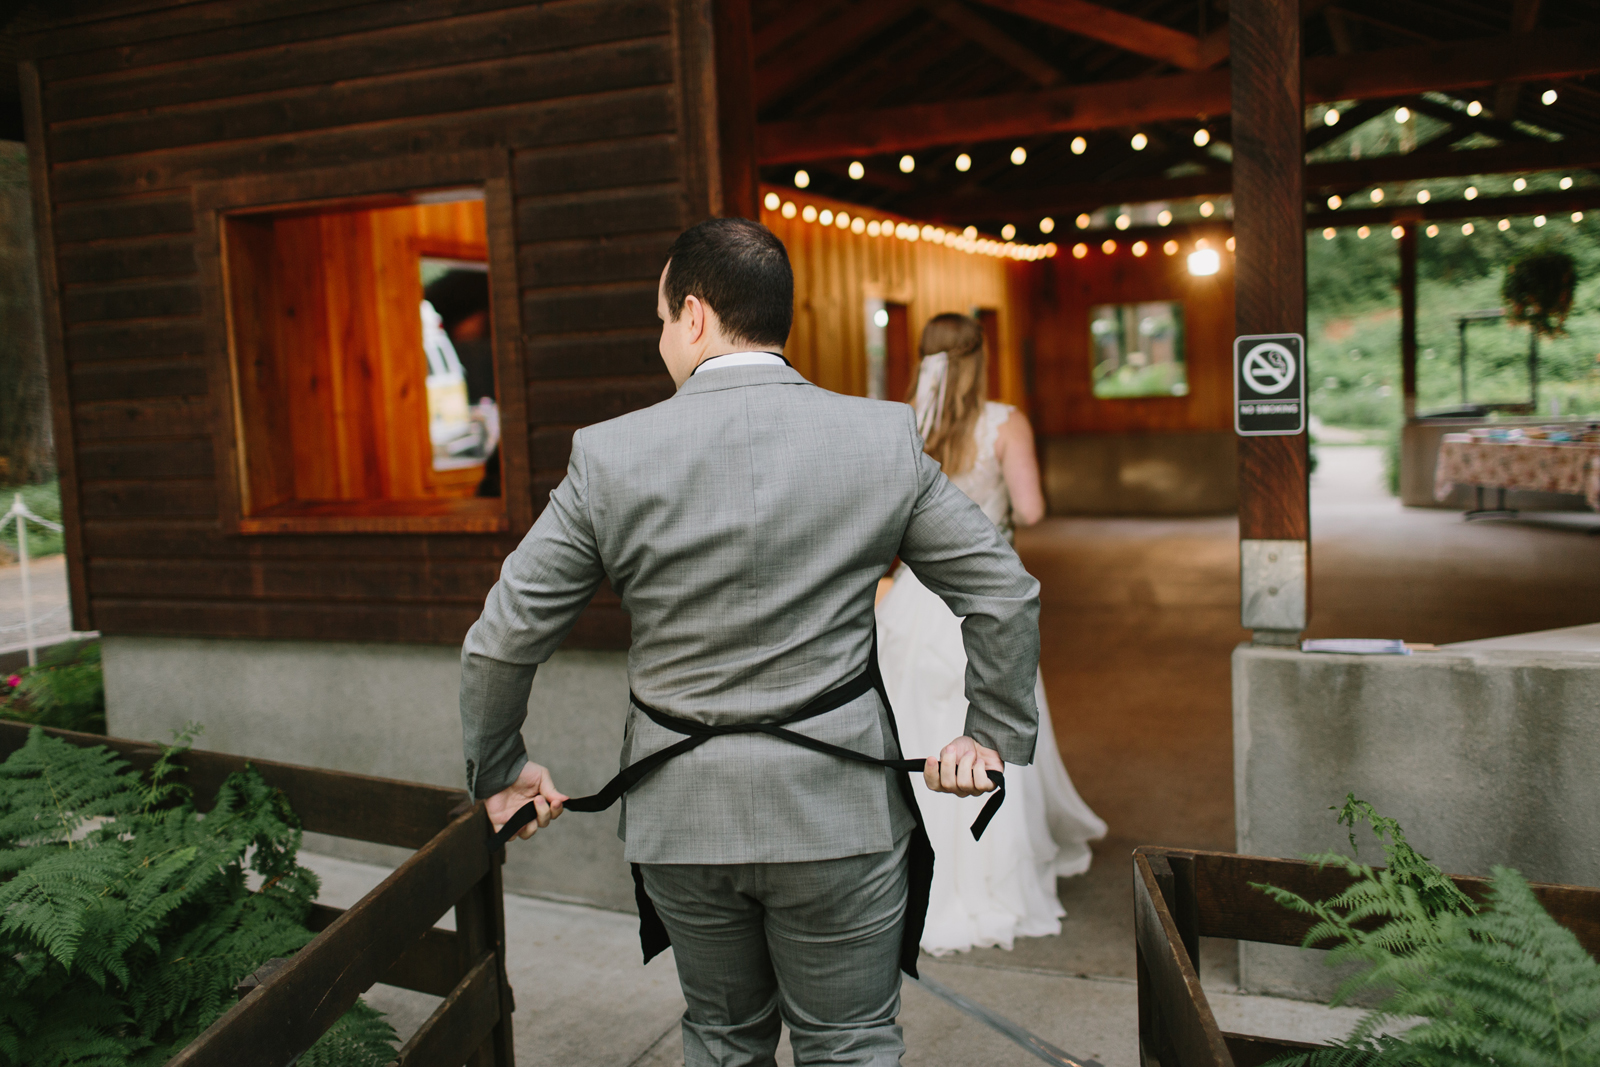 The groom adjusts his apron before cutting pies at Bridal Veil Lakes in Corbett, OR